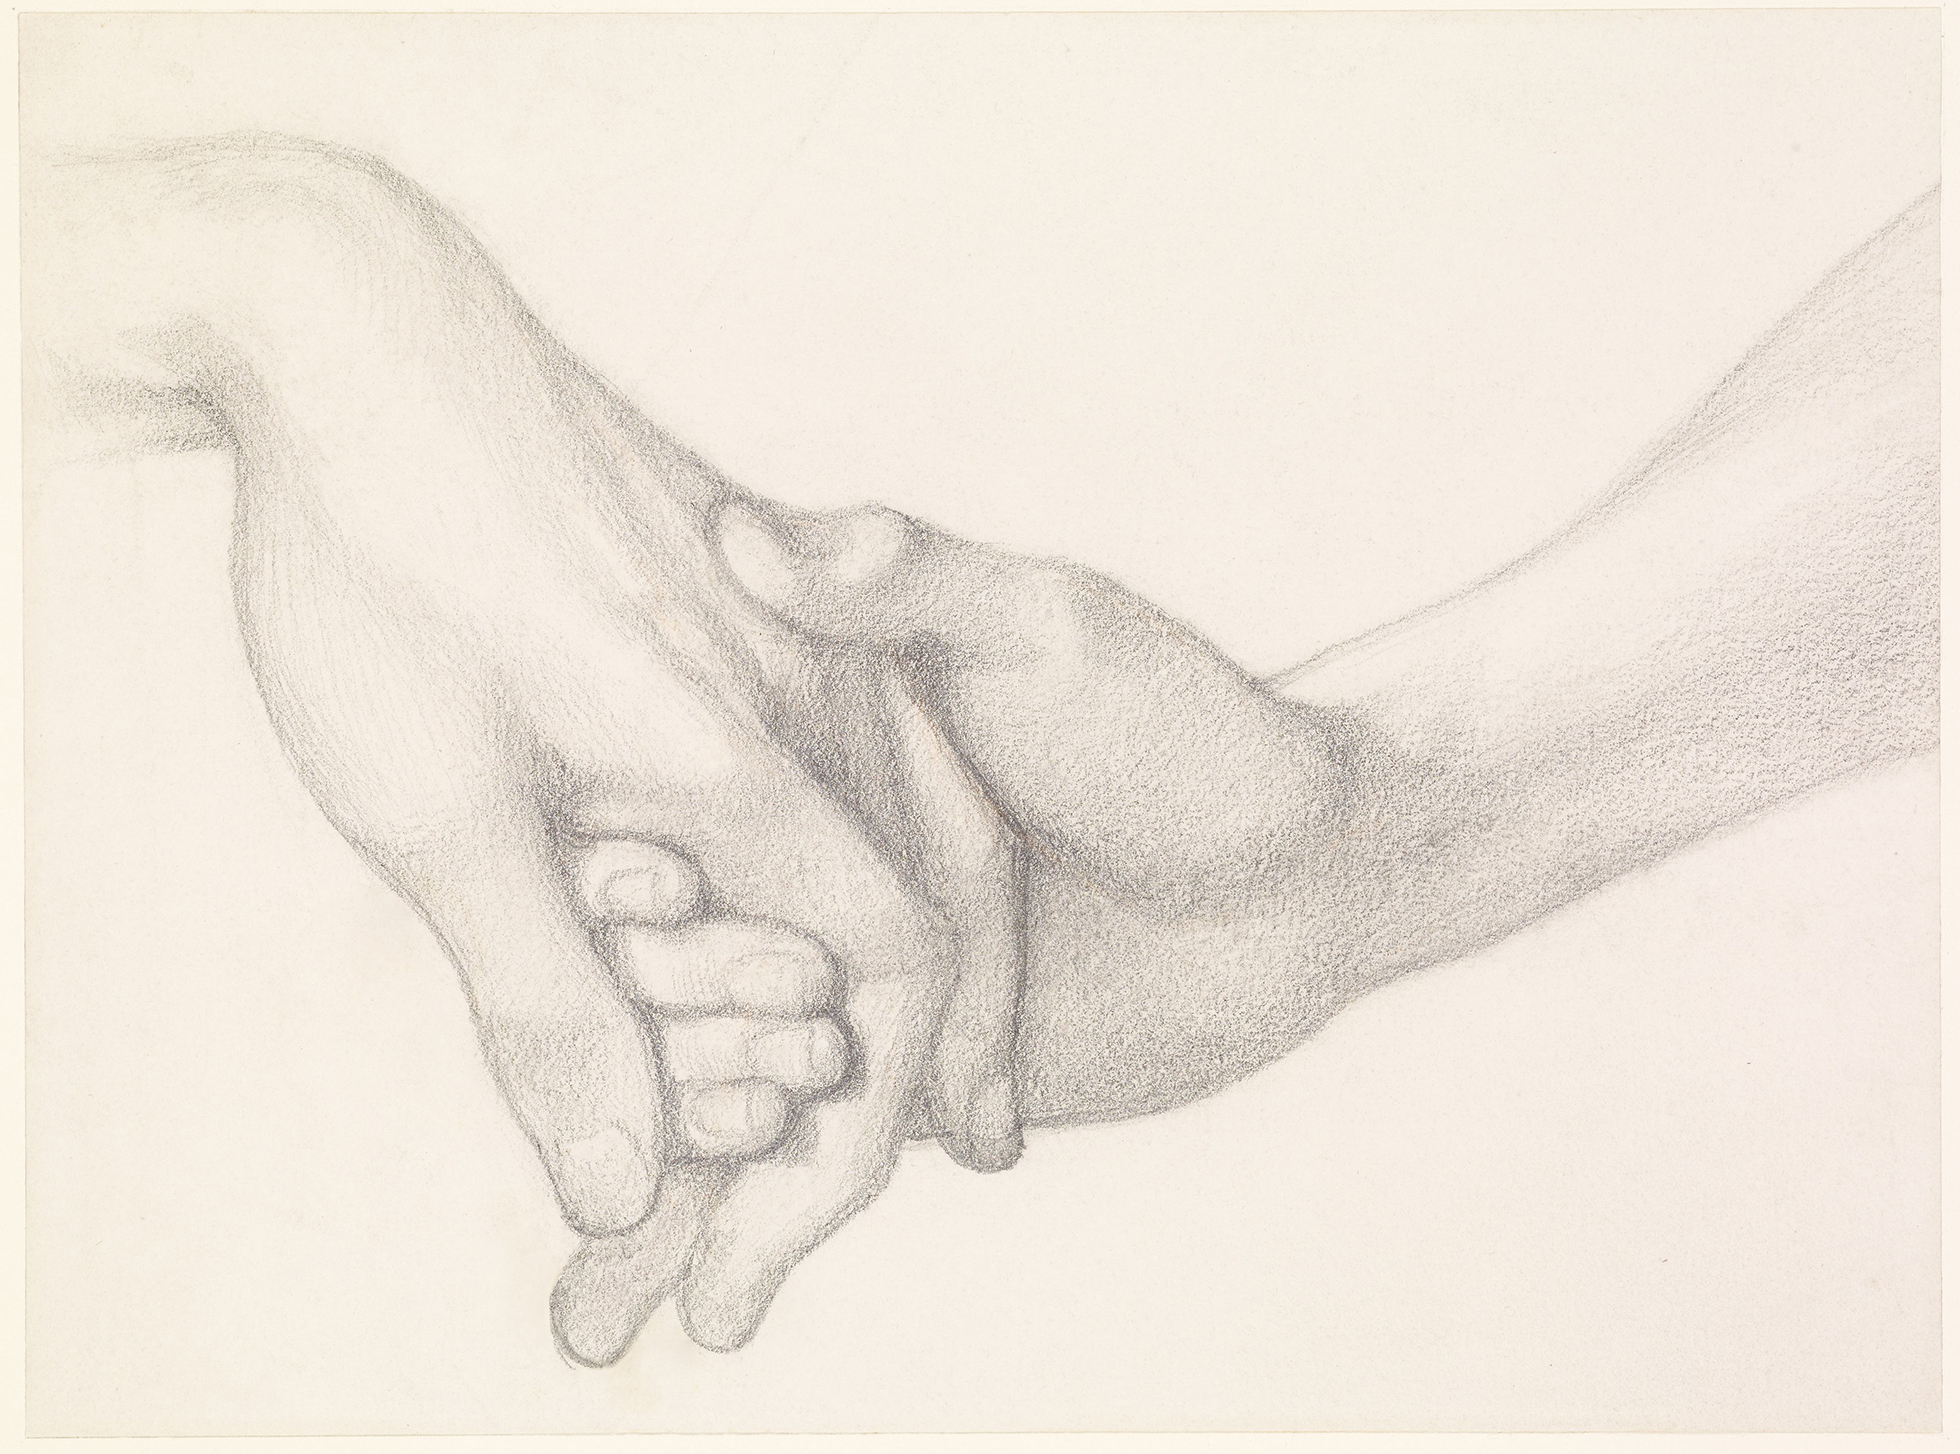 A pencil drawing of two hands in a tender embrace.